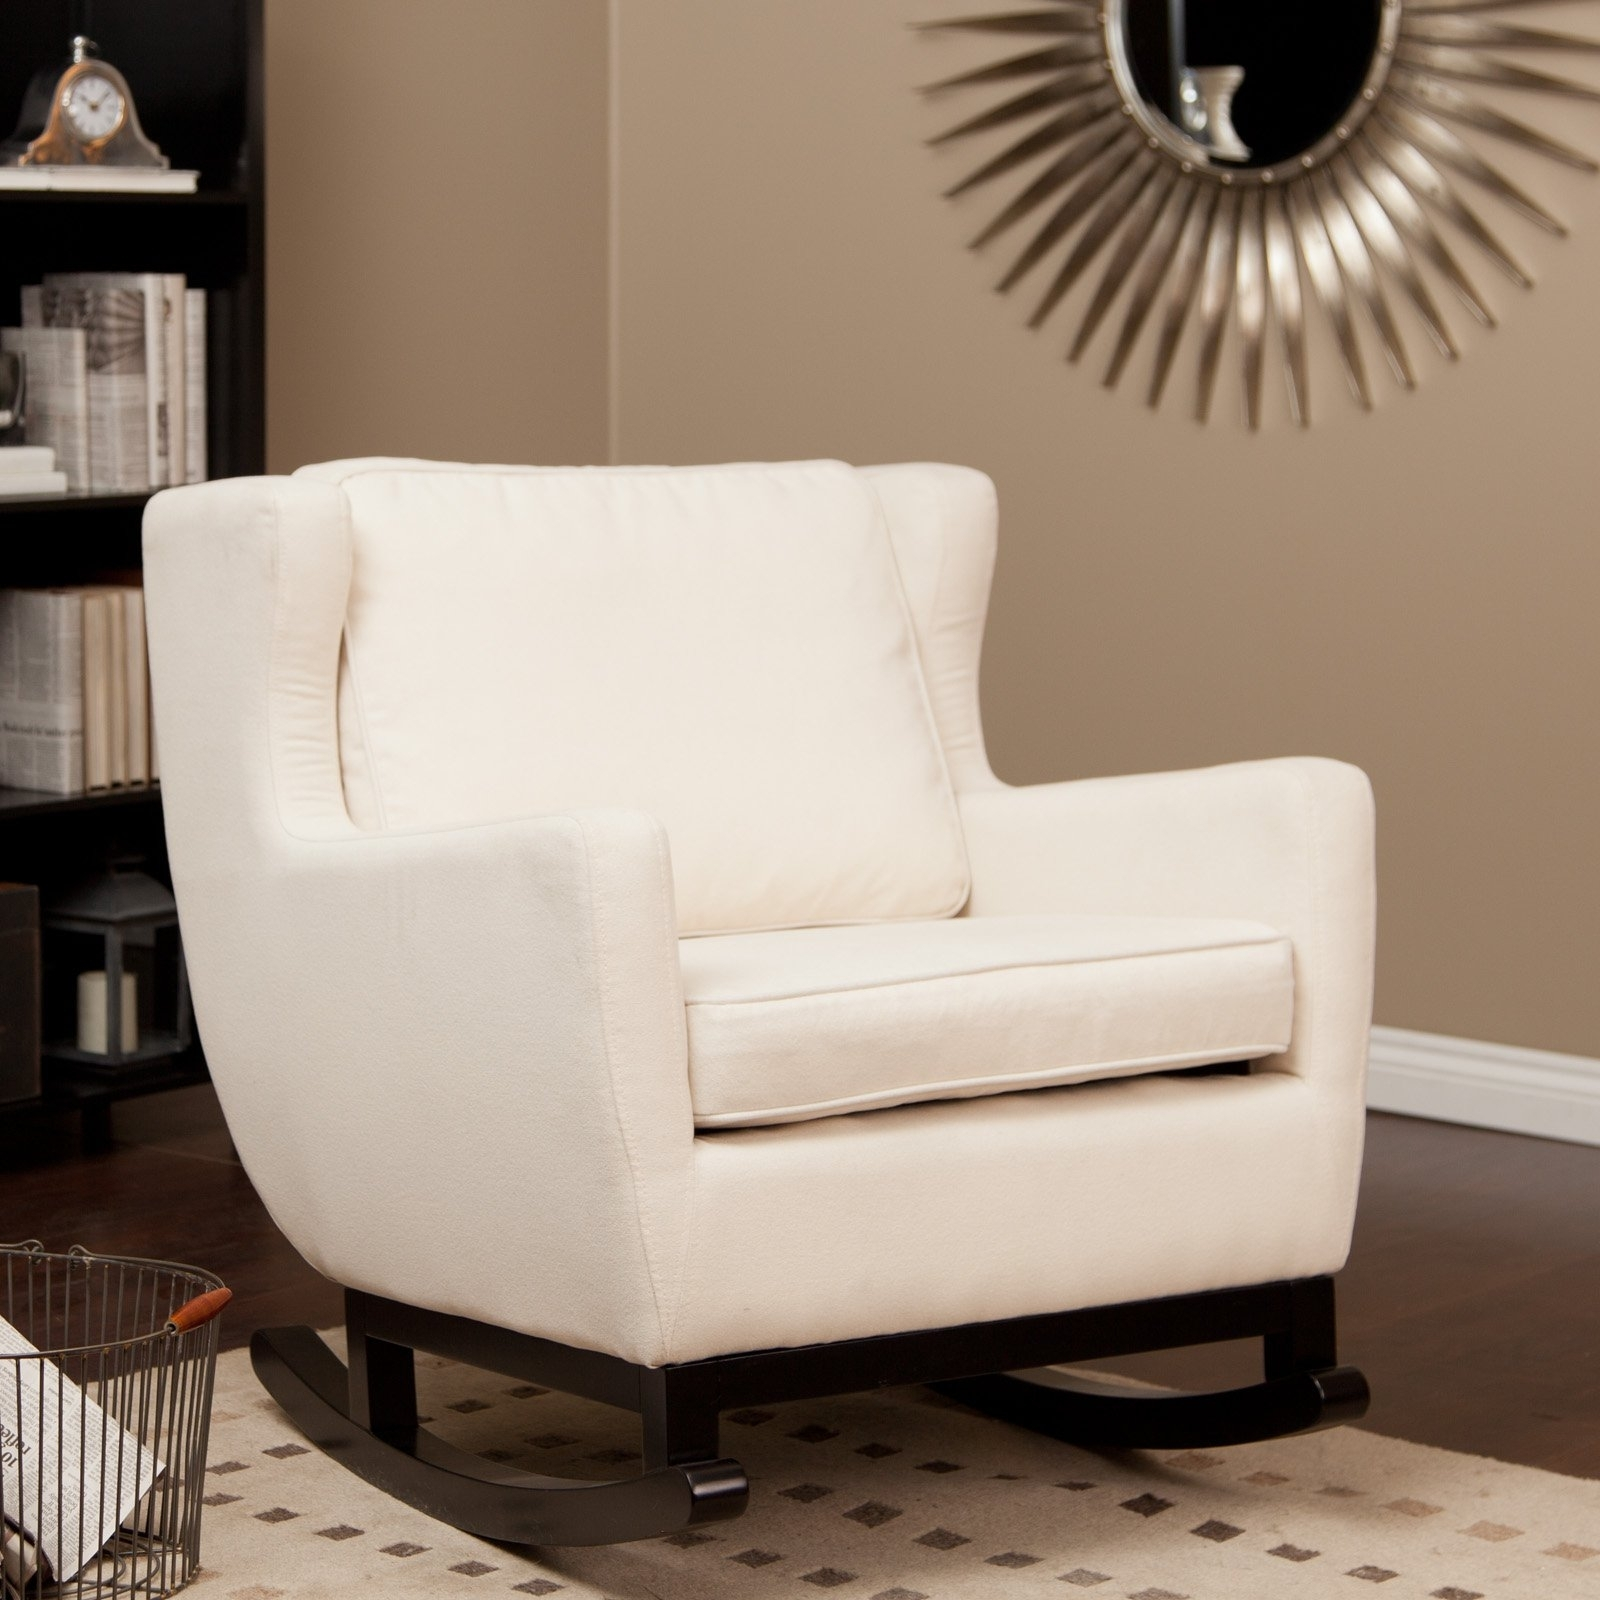 Chair | Boston Rocking Chair White Glider Rocker Comfortable Rocking With Regard To Upholstered Rocking Chairs (#7 of 15)